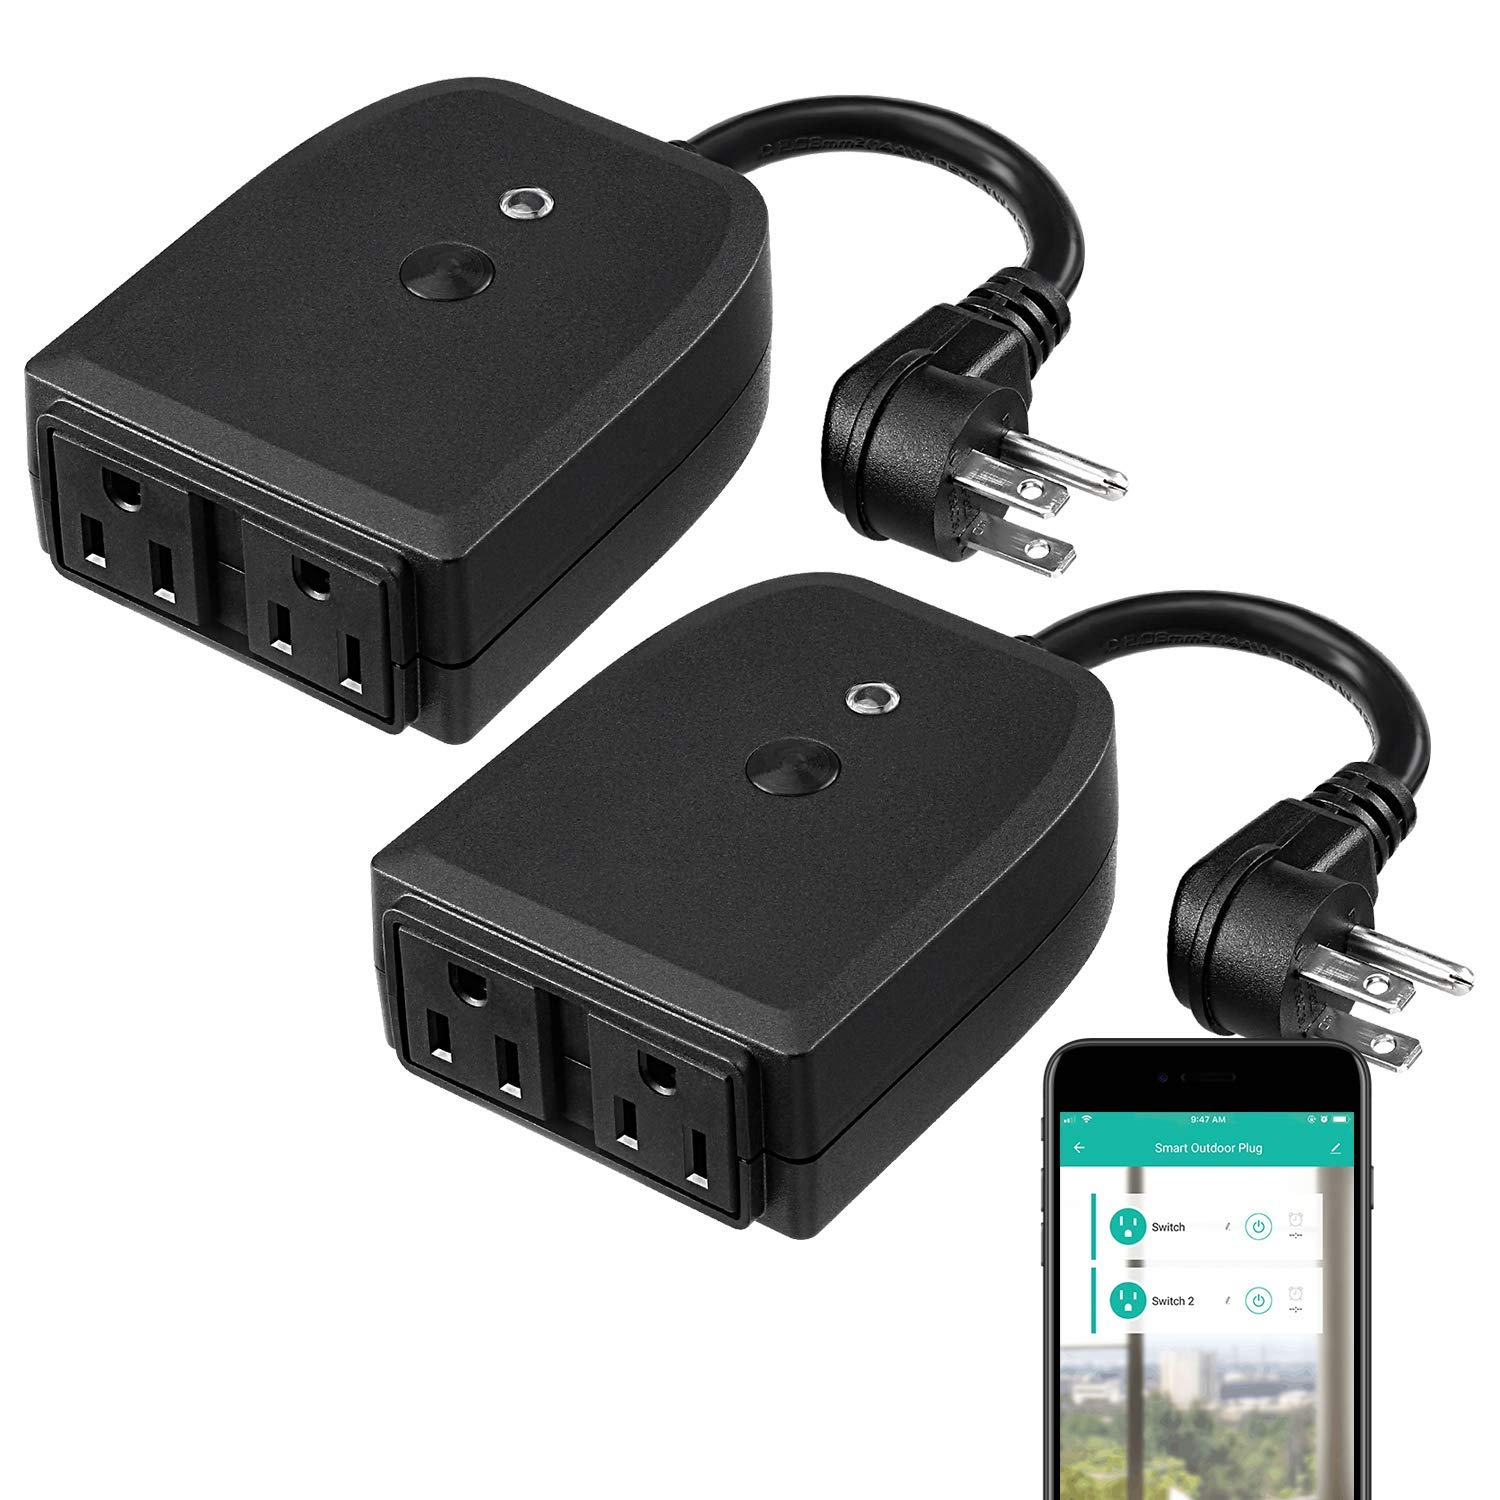 LITEdge 2-in-1 Outdoor Smart Plug, Waterproof Smart Outlet Socket, Compatible with Google Home & Alexa, WiFi Outdoor Plug Power Outlet, APP Wireless Remote Control Available, Pack of 2